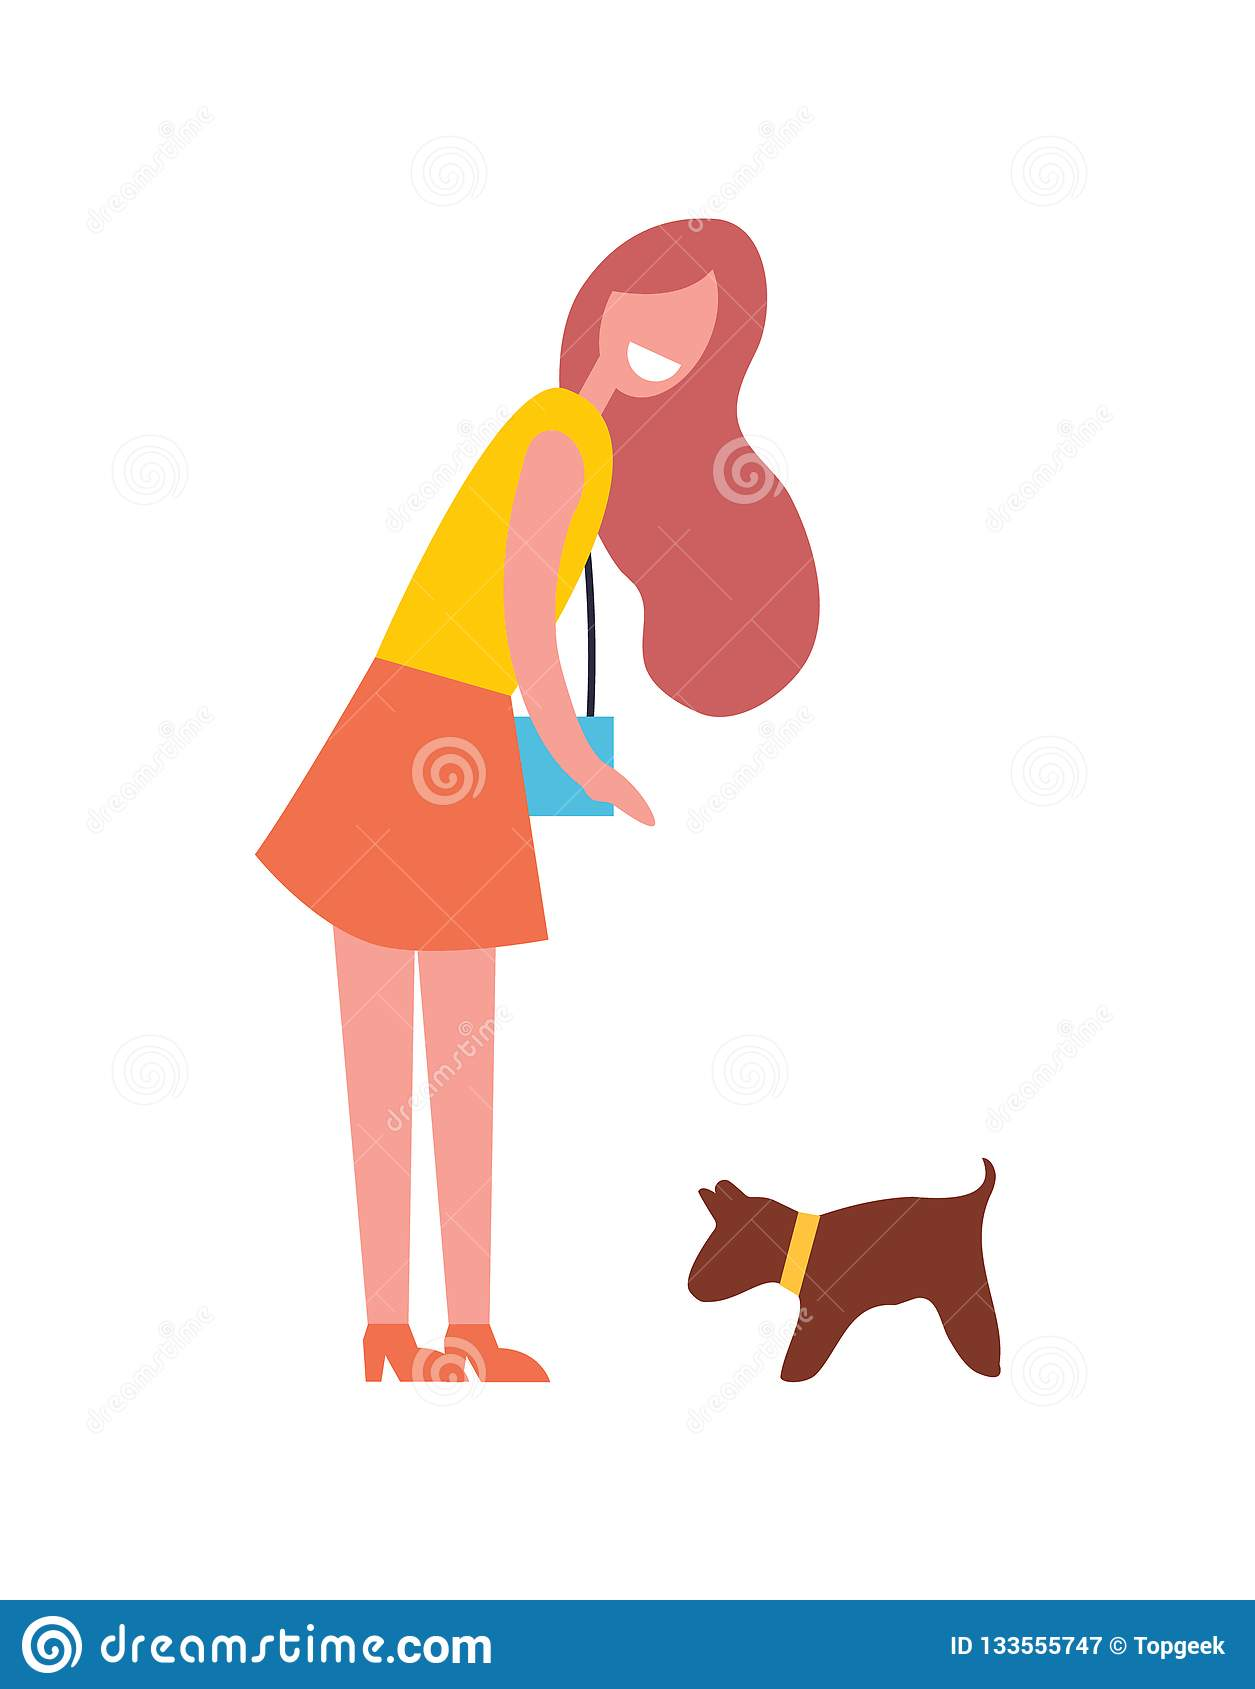 de85cfcdf33 Woman Walking With Dog Pet Vector Illustration Stock Vector ...